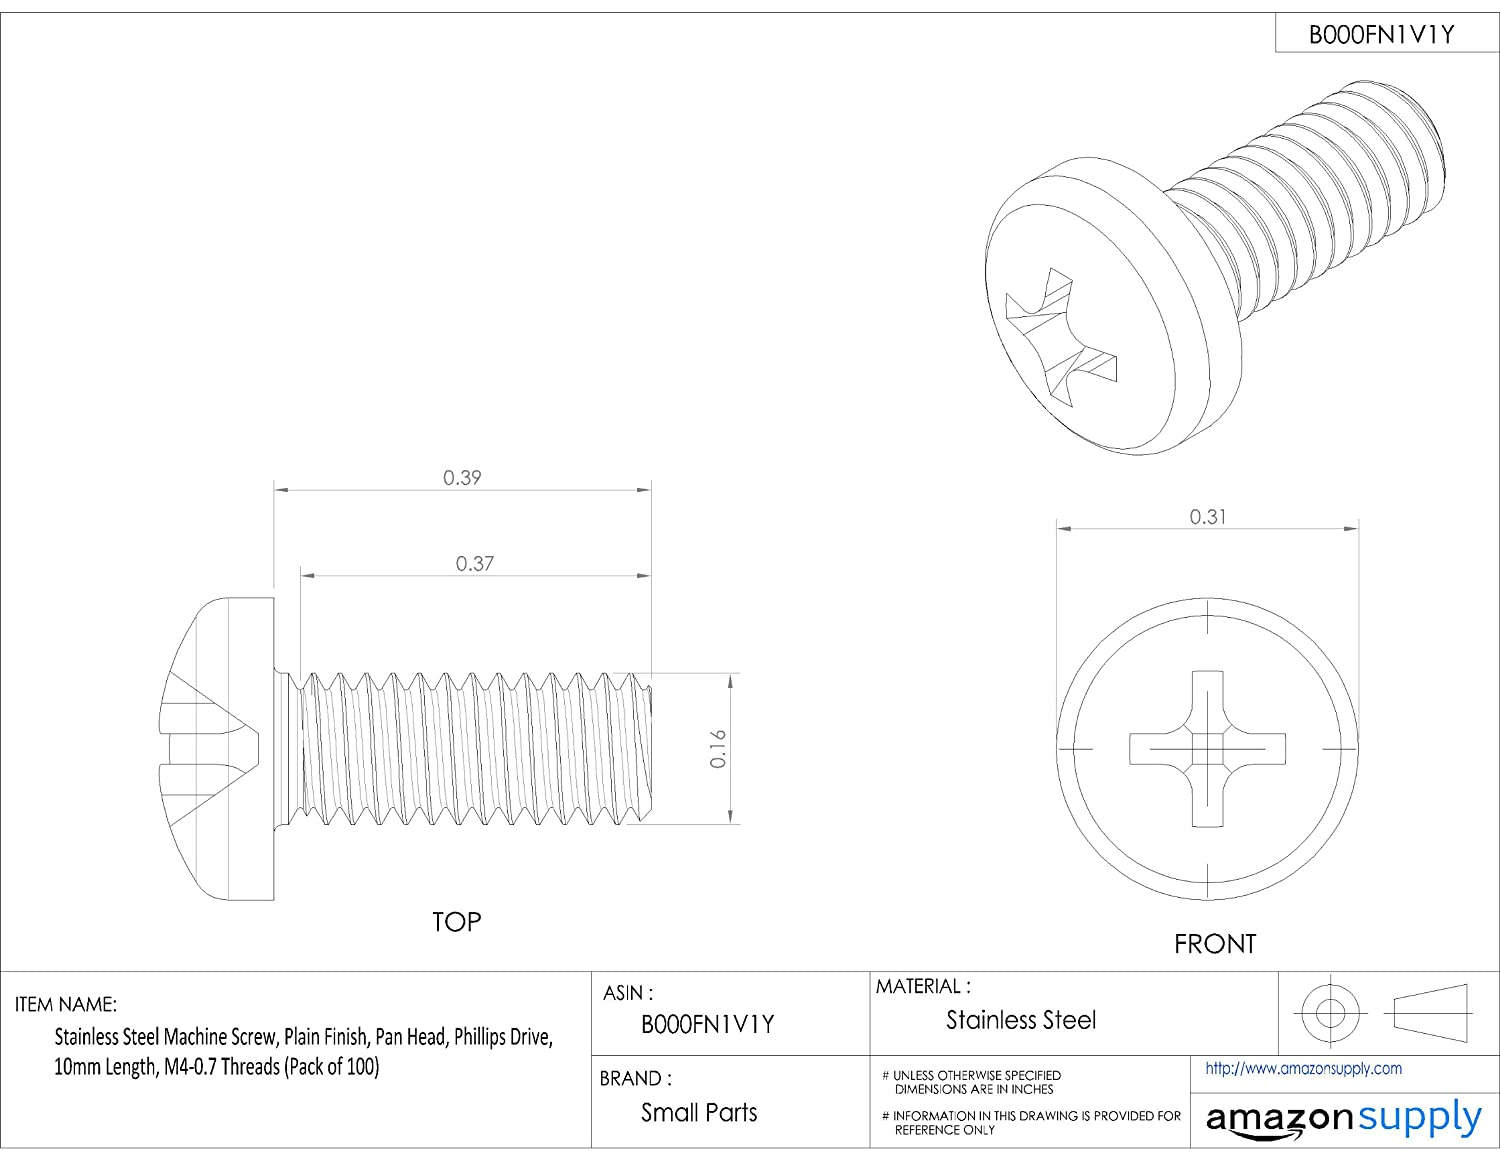 Pan Head Phillips Drive Stainless Steel Machine Screw Pack of 100 10mm Length M4-0.7 Threads Plain Finish